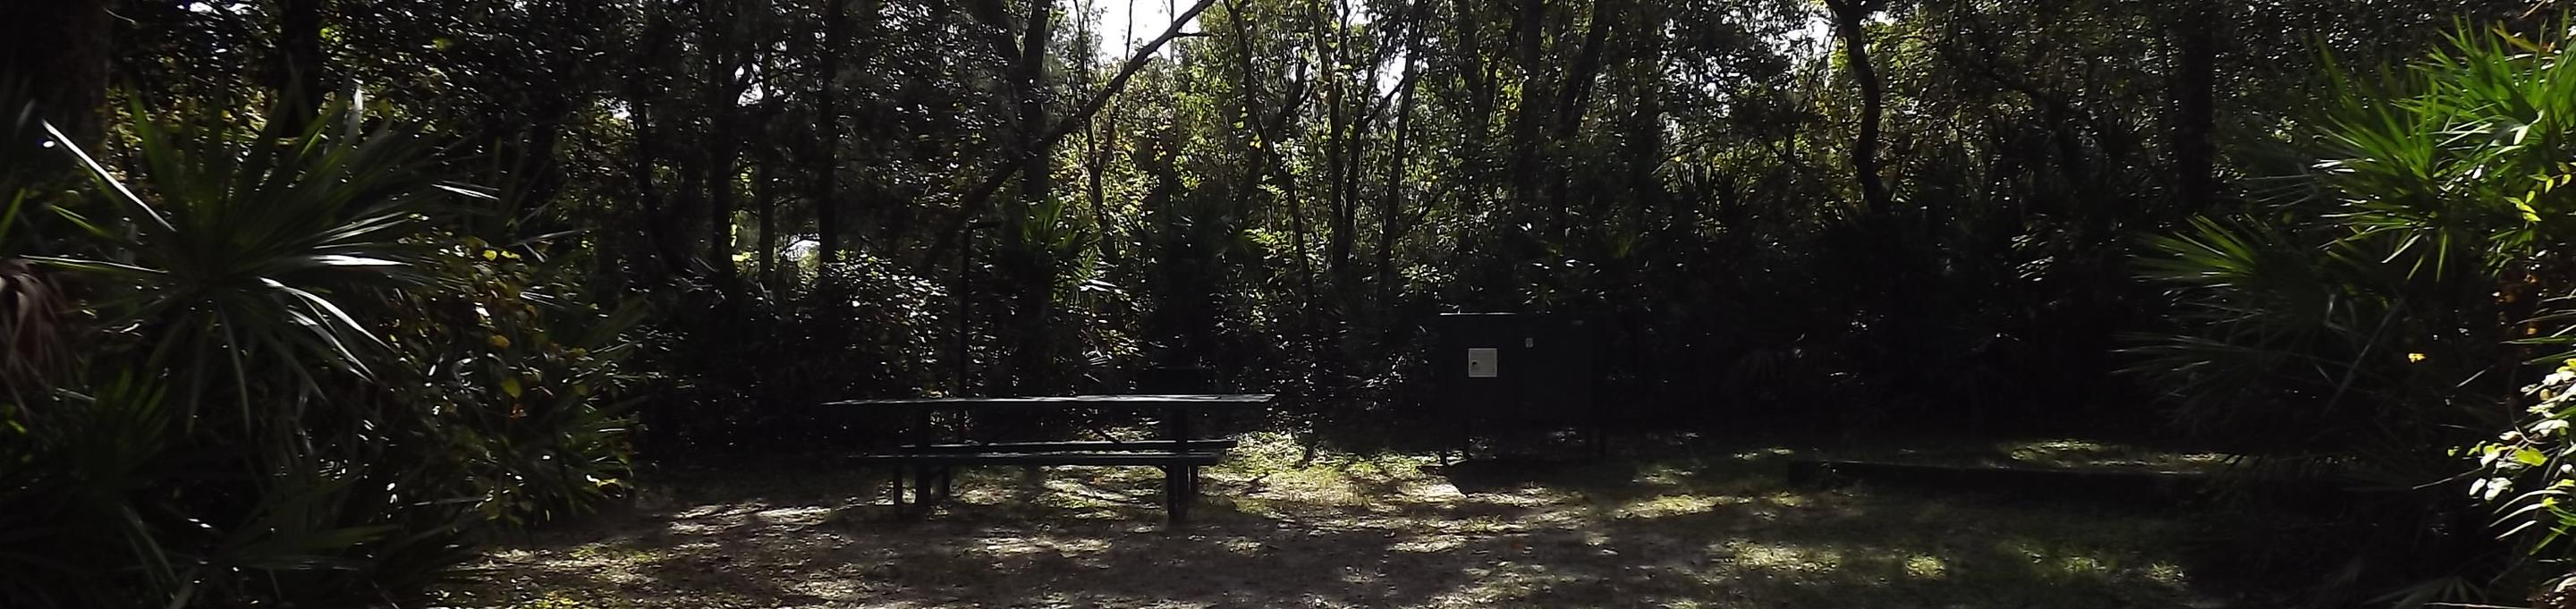 Juniper Springs Recreation Area site #52 tropical setting with picnic area and camping space.